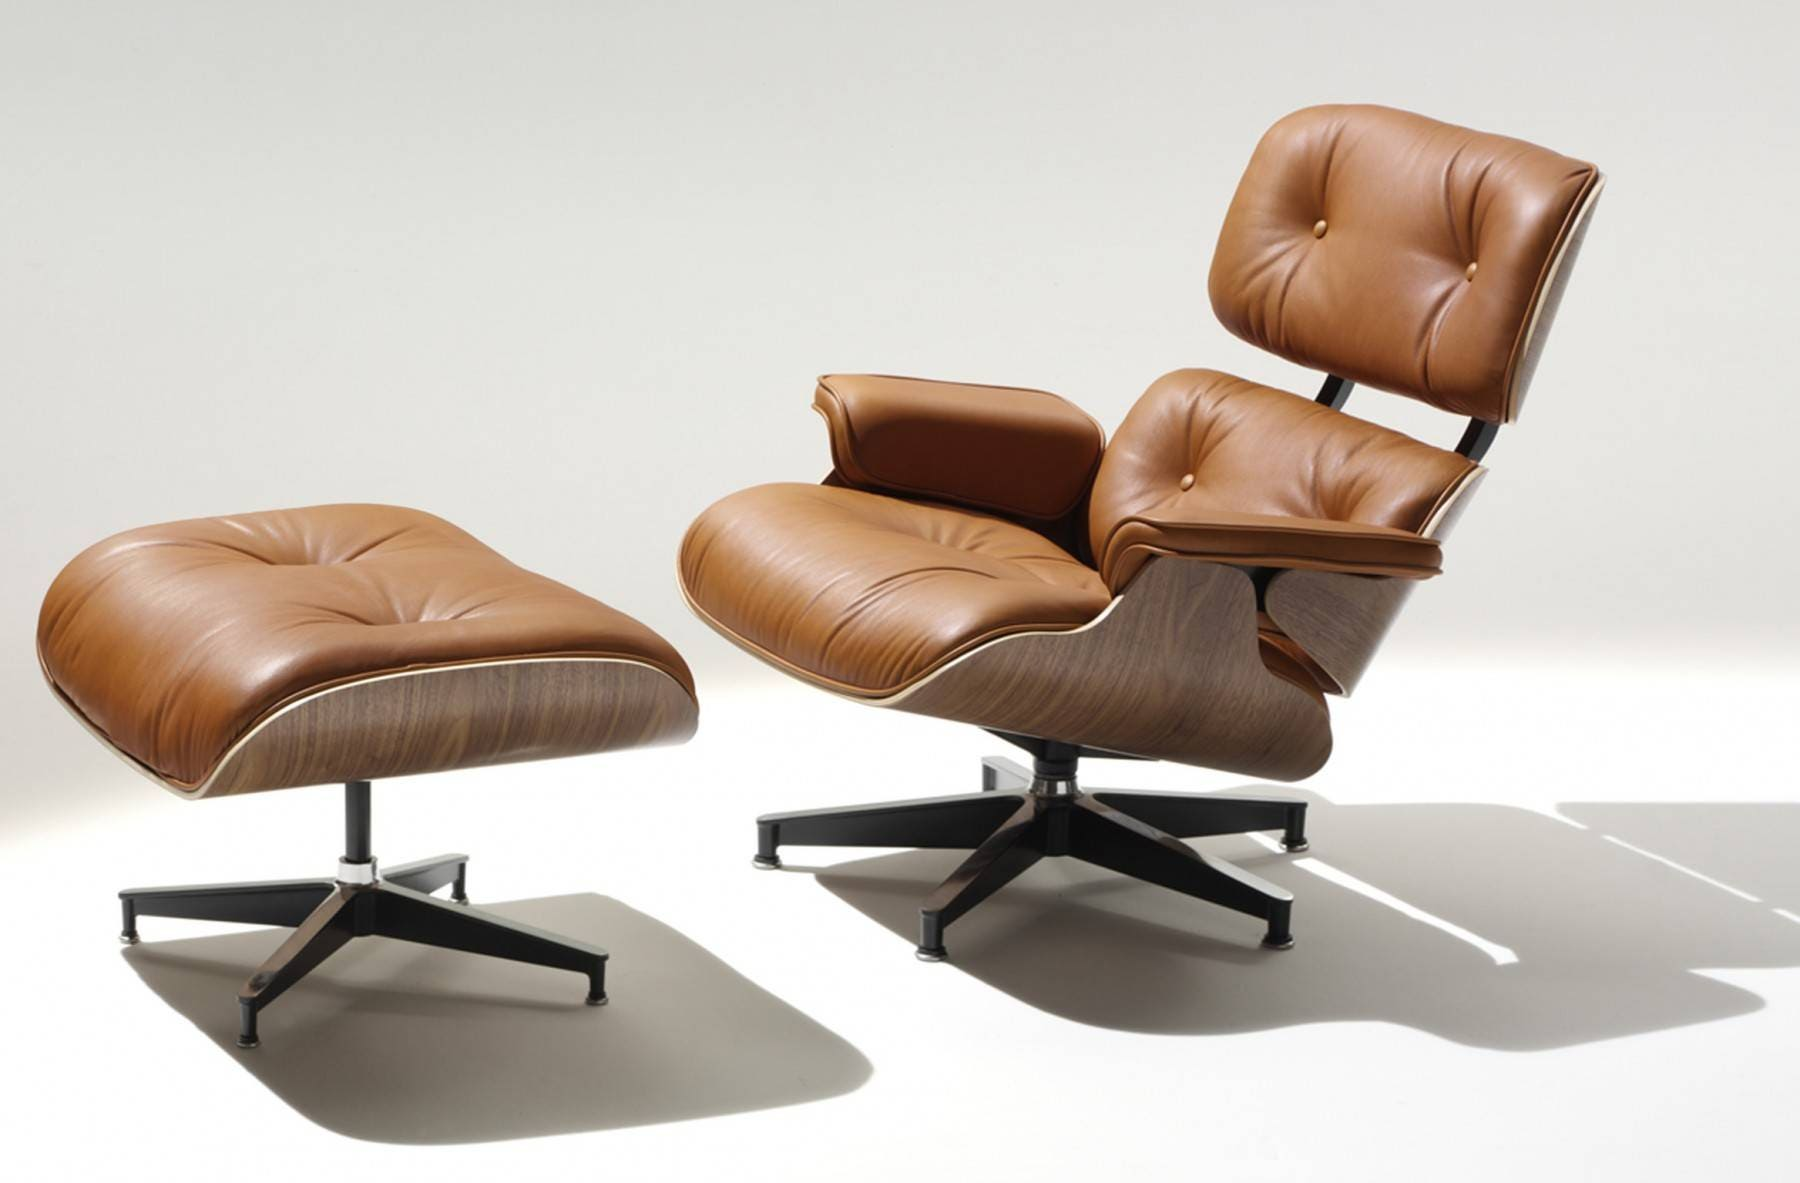 Eames Lobby Chair Price Eames Lounge Chair Eames Lounge Chair 1